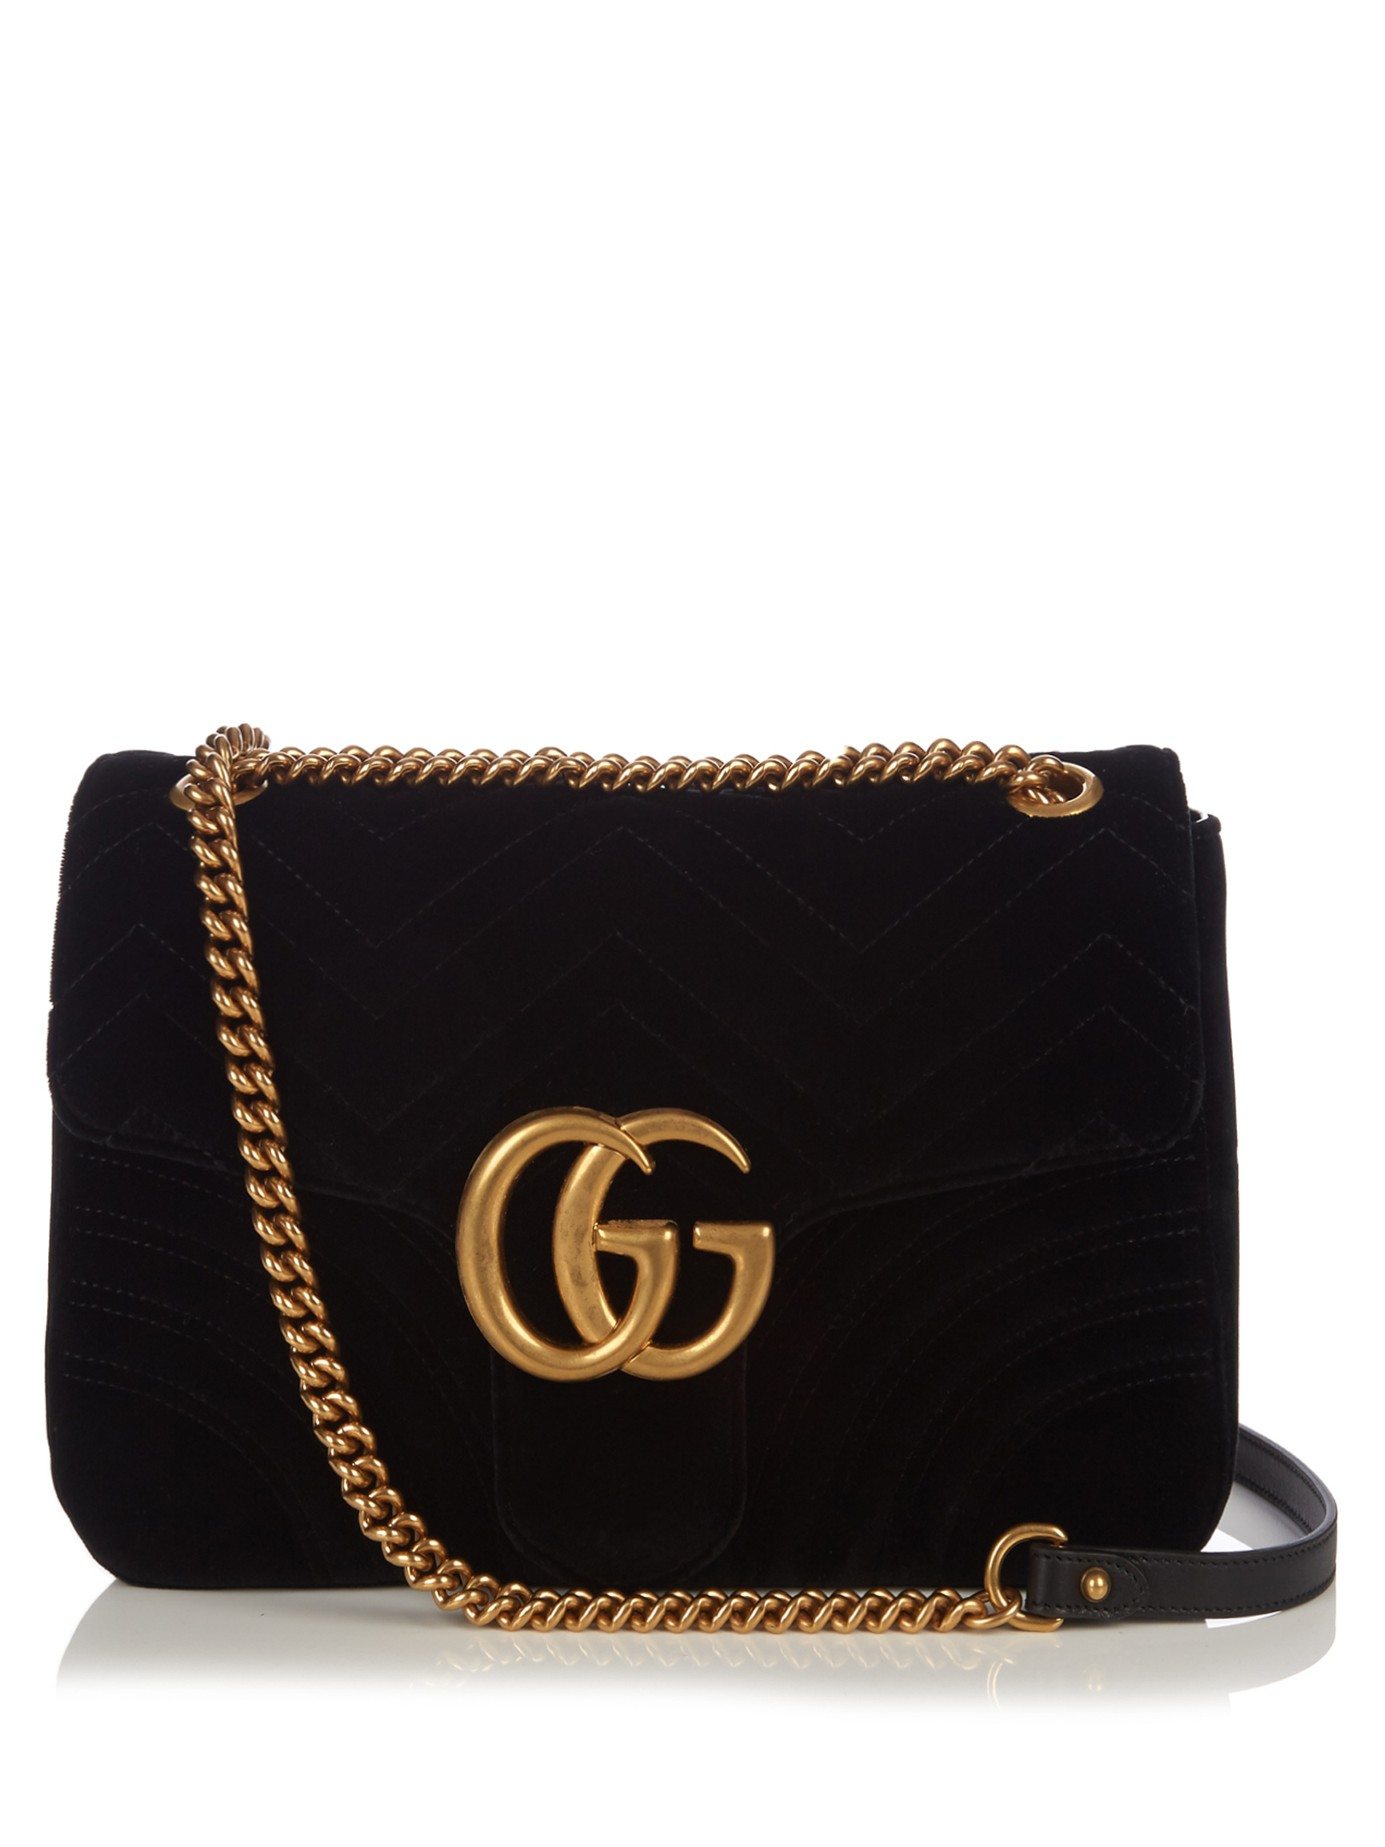 d33fe09c552f Gucci Velvet Marmont Clutch With Chevron Motif. Gucci GG Marmont Velvet Shoulder  Bag Black 443497. GUCCI Gg Marmont 2.0 Mini Quilted Velvet Crossbody ...